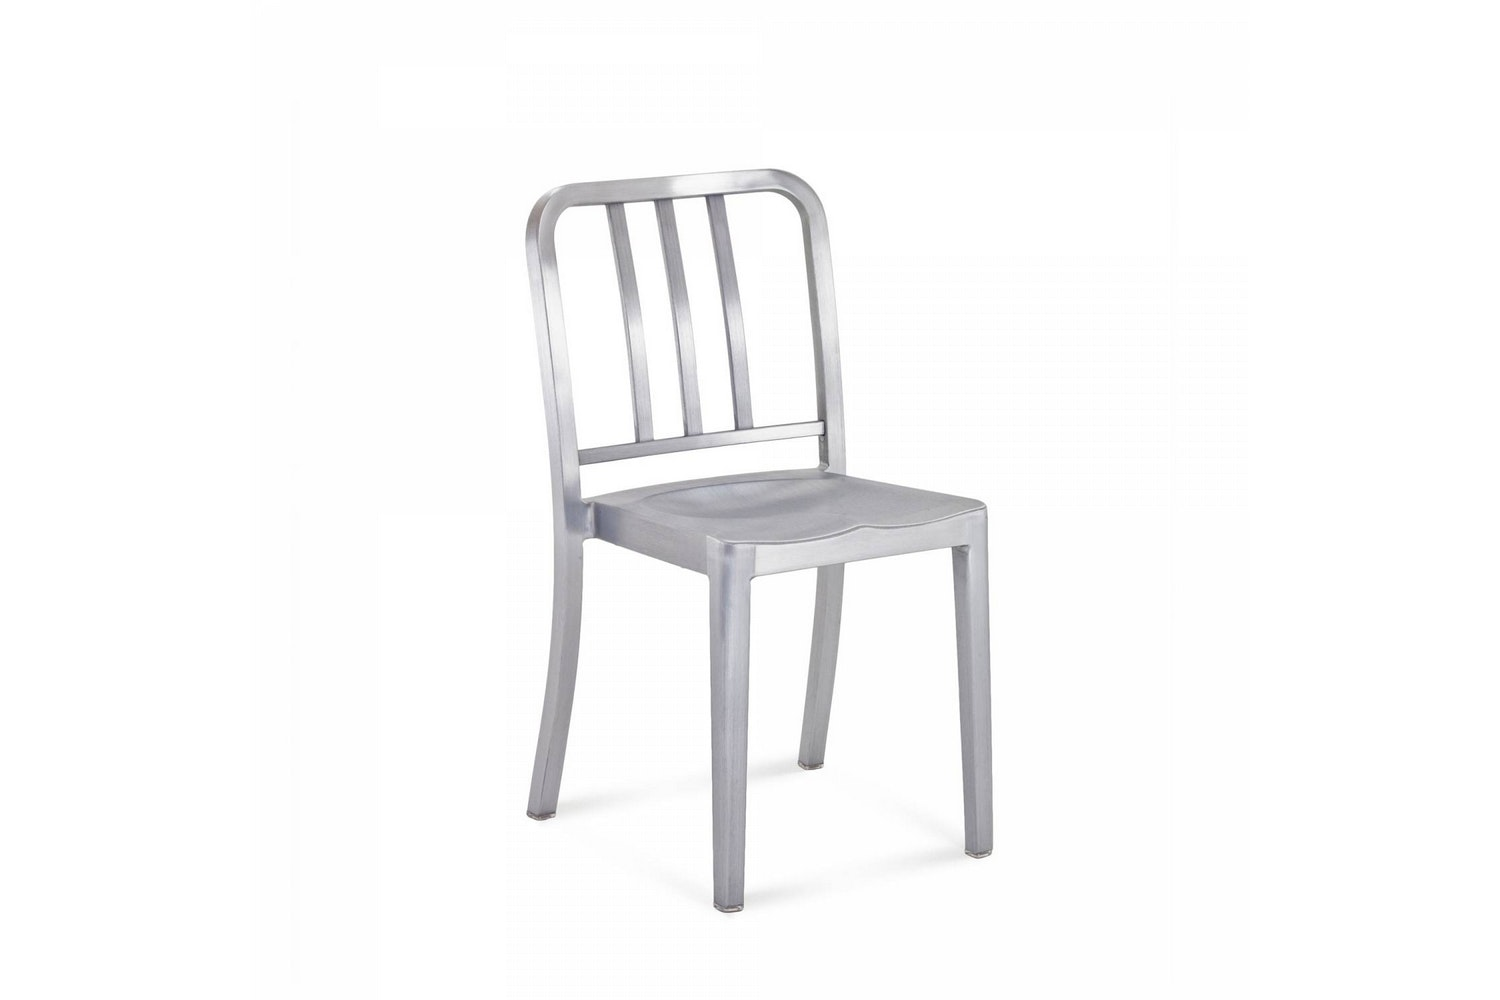 Heritage Chair by Philippe Starck for Emeco